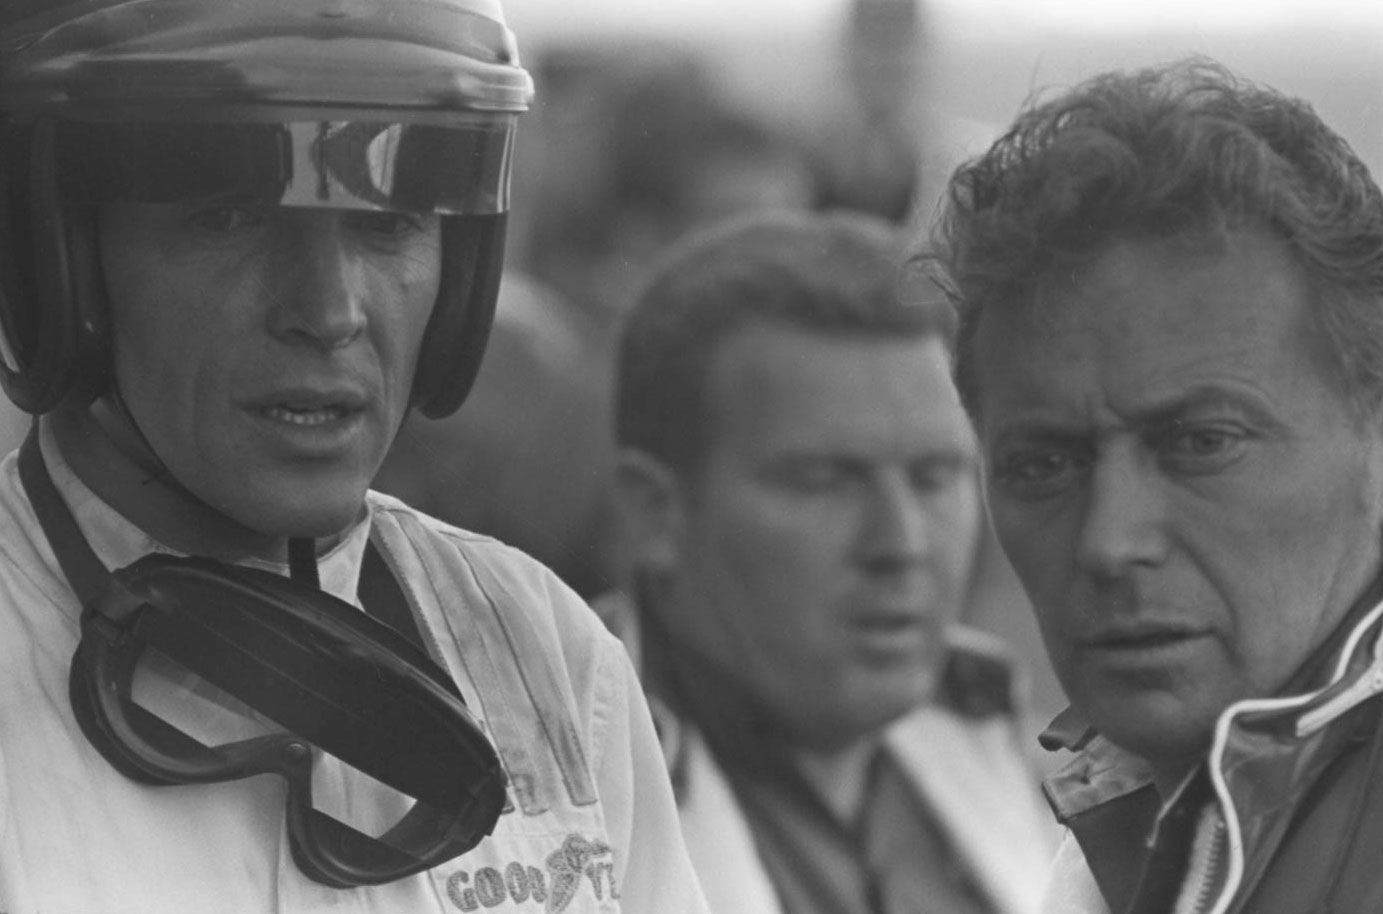 Dan Gurney (in helmet) and Phil Remington (far right) were a formidable team for Ford. Gurney was one of the best all-around drivers of his era, and Remington was the most talented fabricator in road racing.